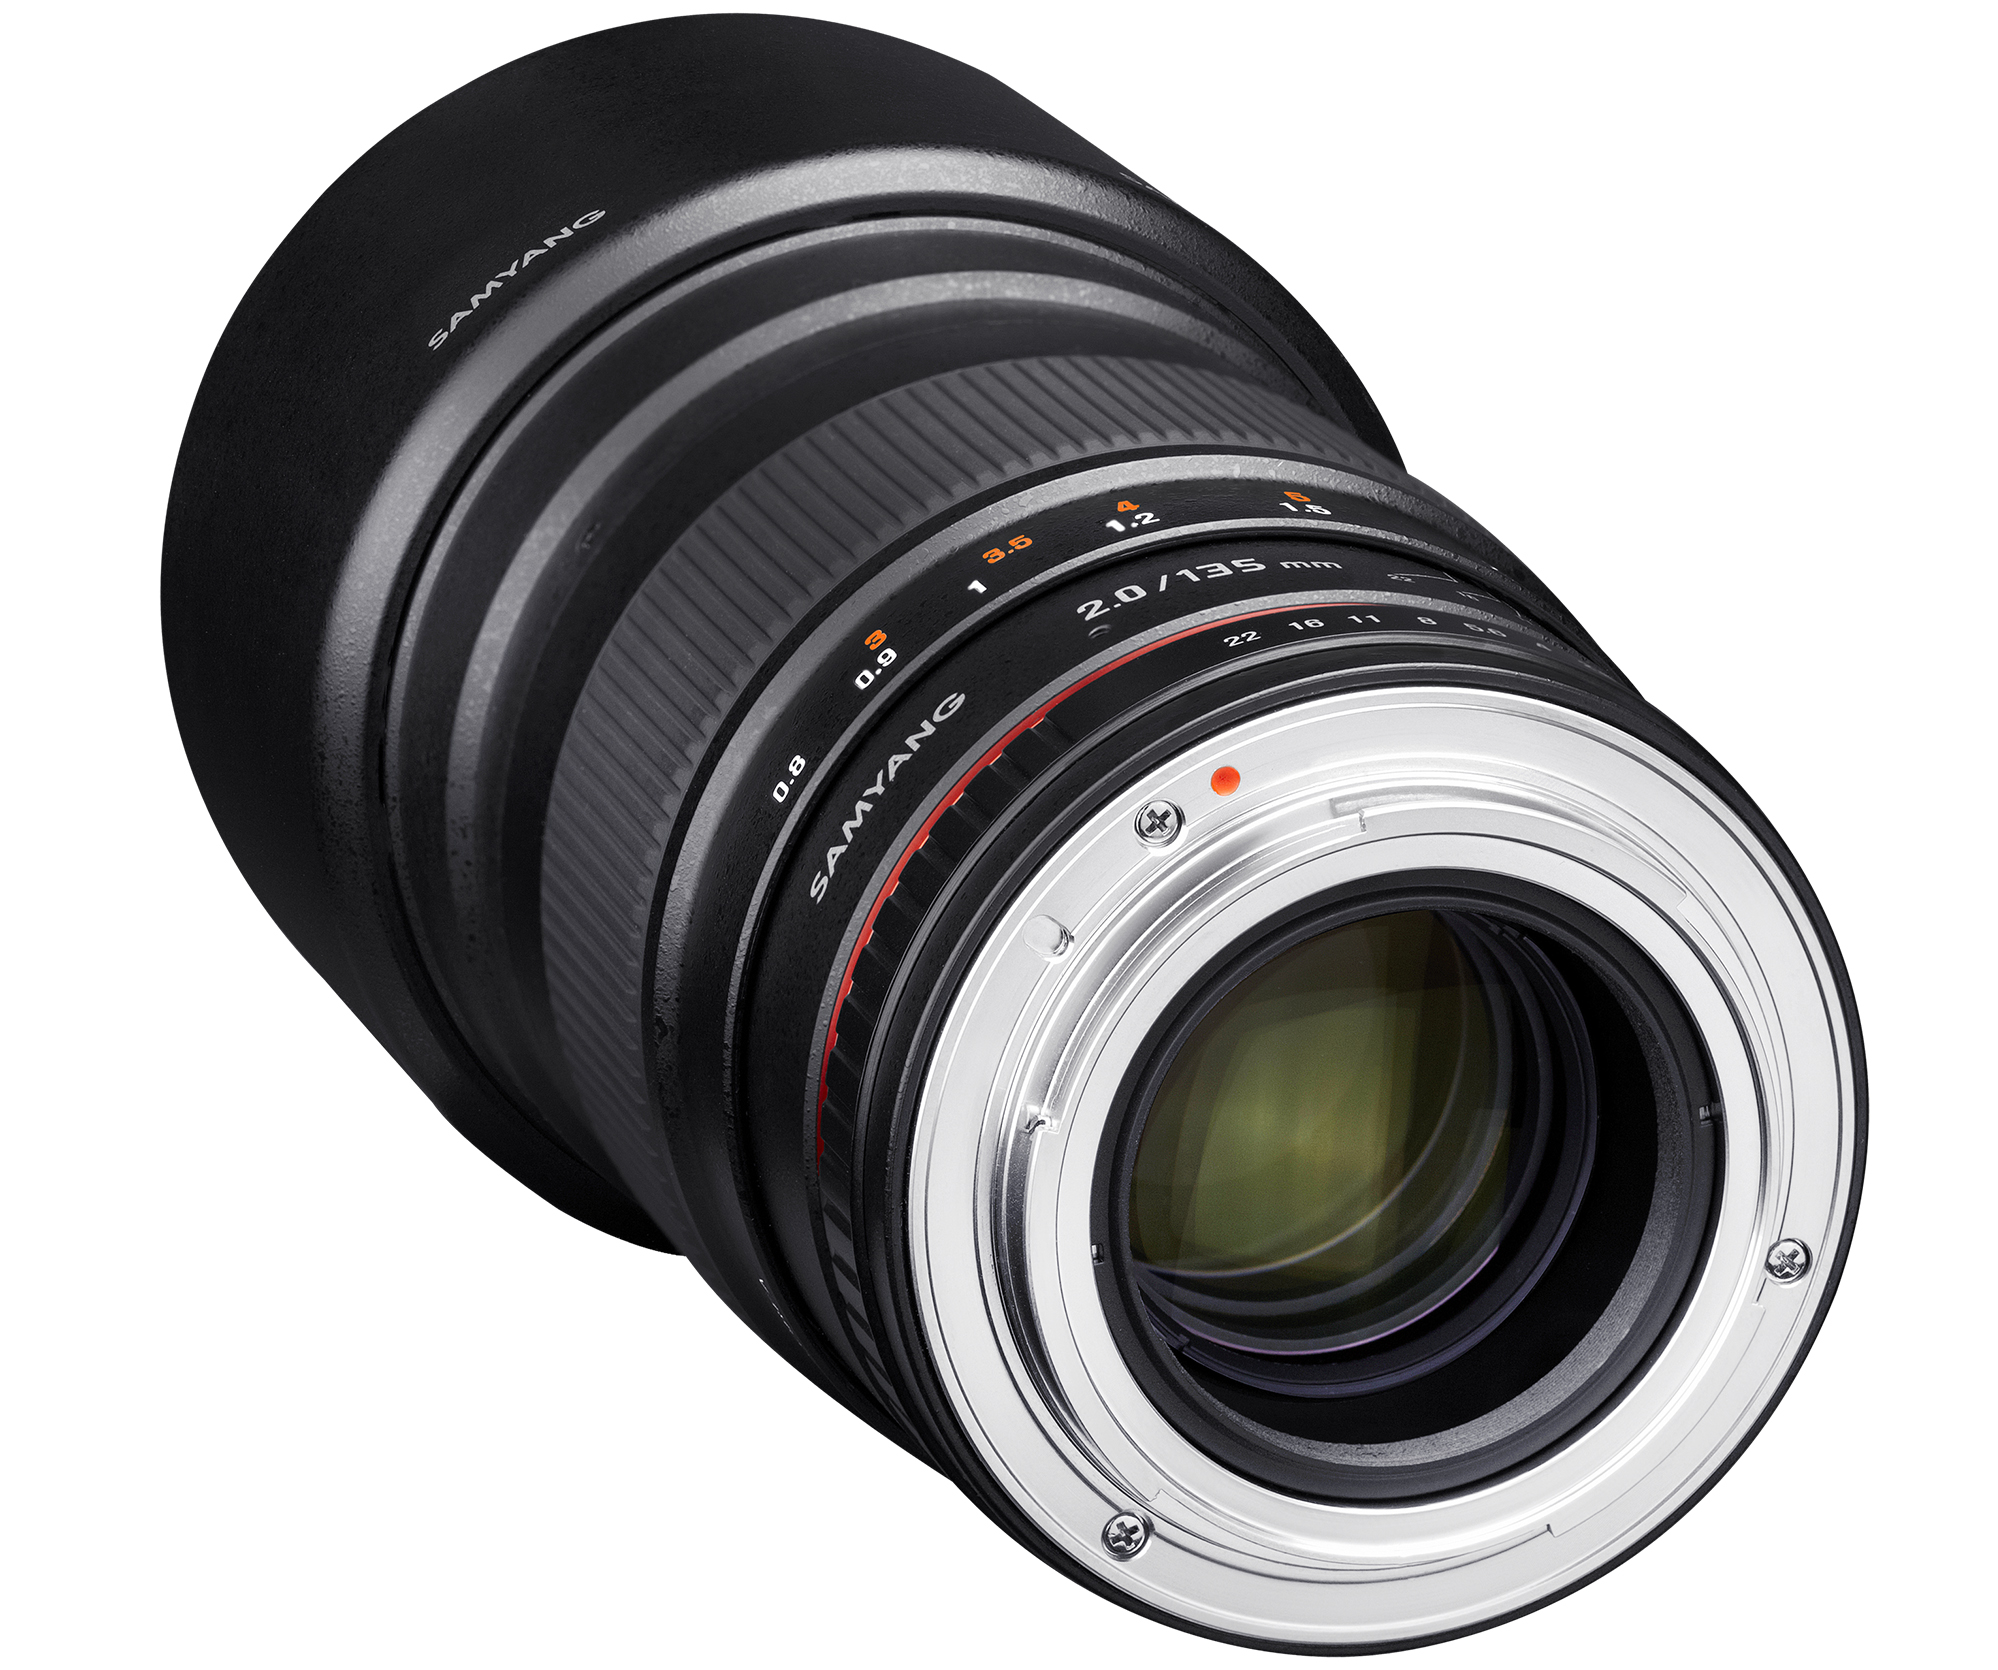 Samyang-135mm-Lens-YouthePhotographer-004